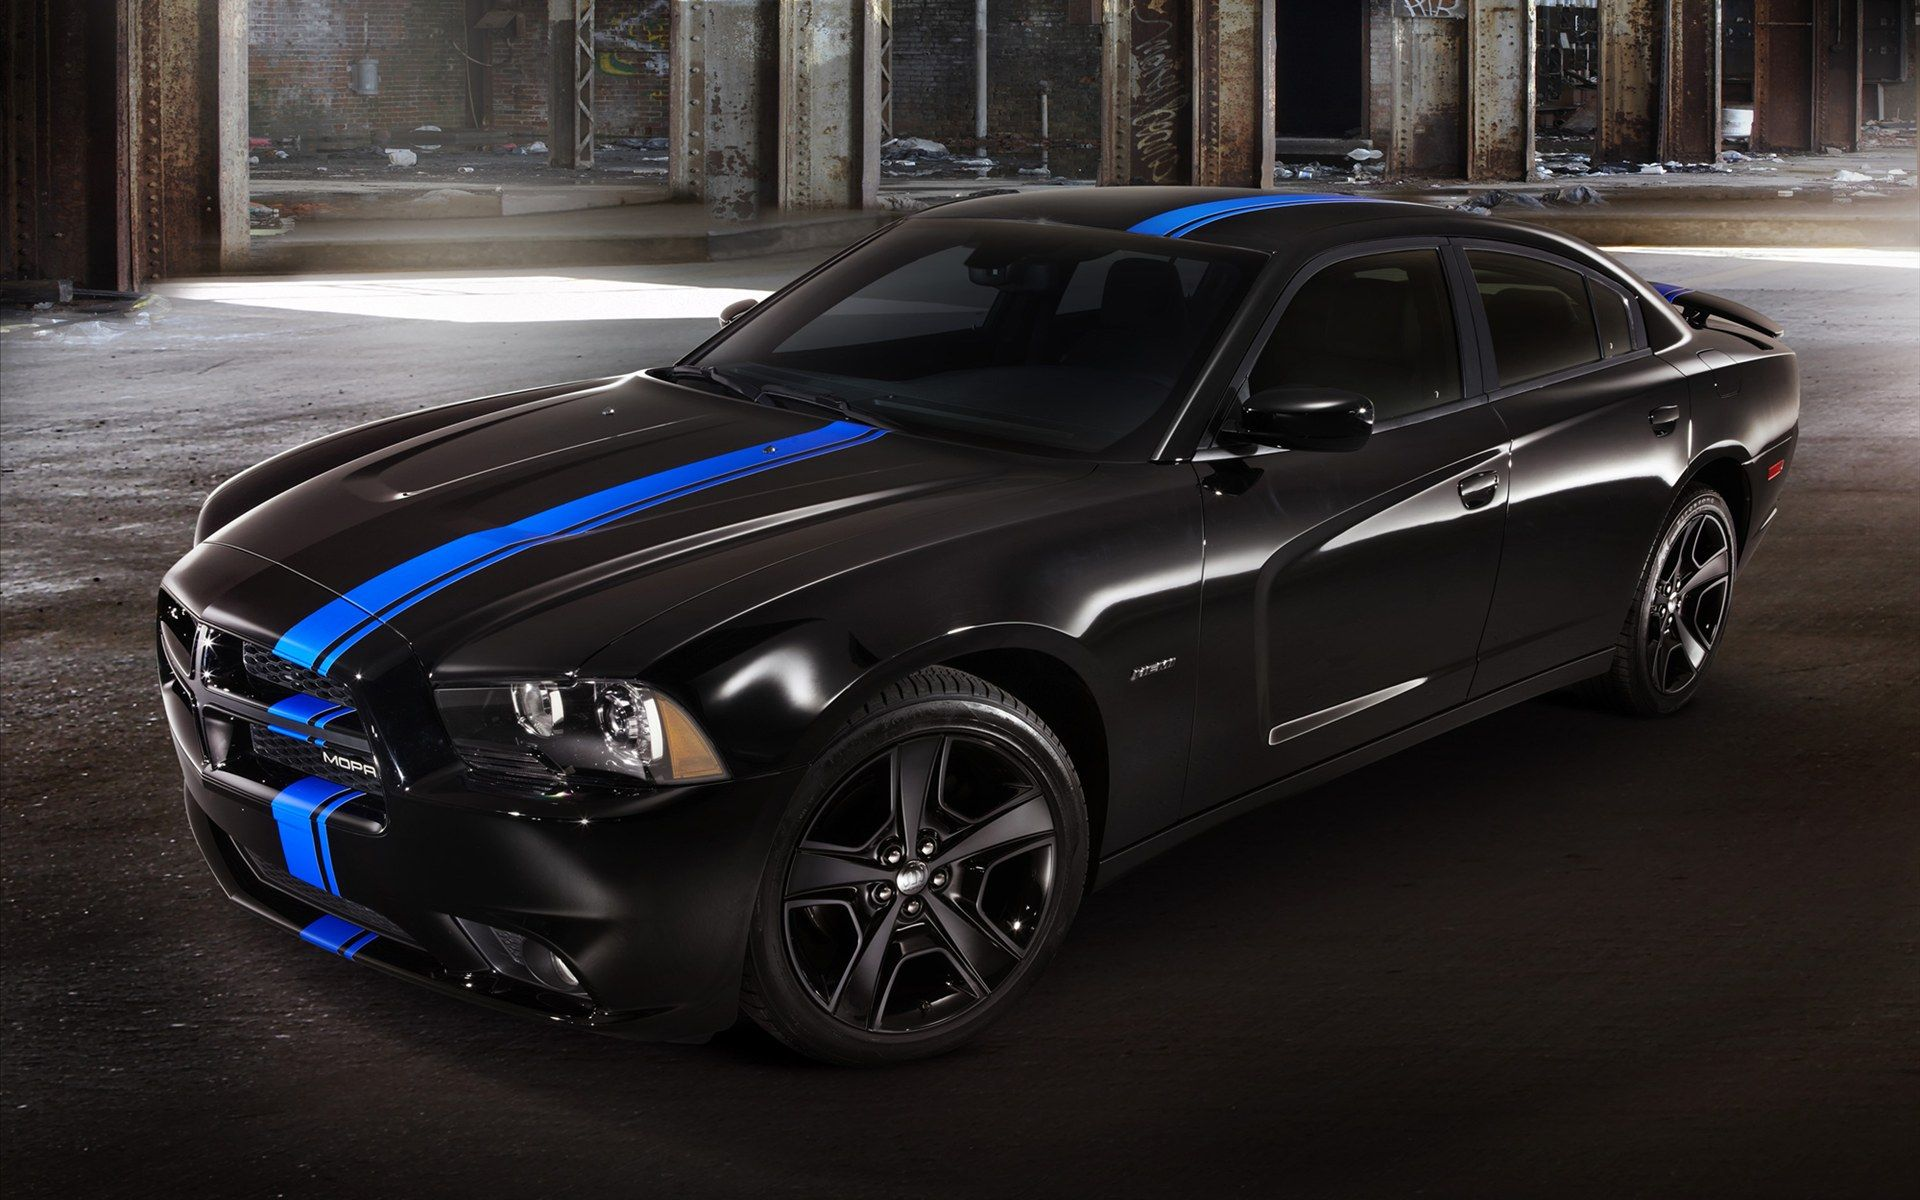 2011 dodge charger this is a dodge i would proudly own but it would have to look just like this one